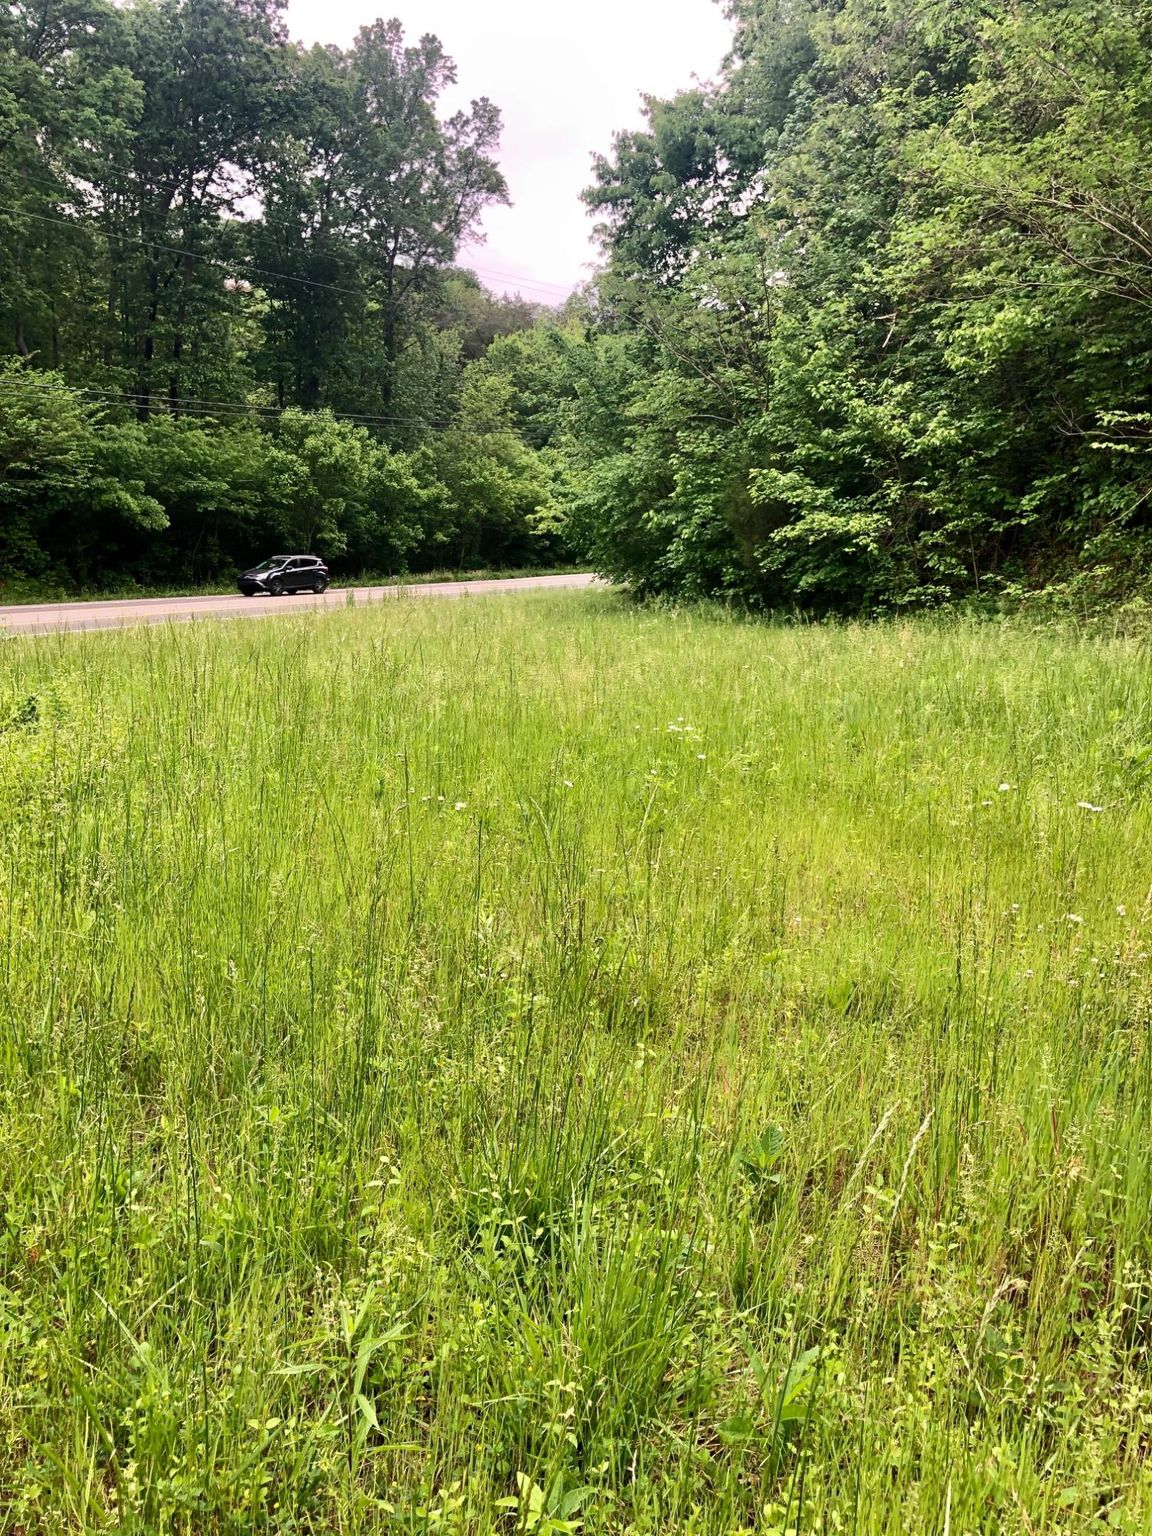 12419 Chapman Hwy, Seymour, TN 37865 - Lot/Land - MLS #1079412 - 7 Photos |  Trulia